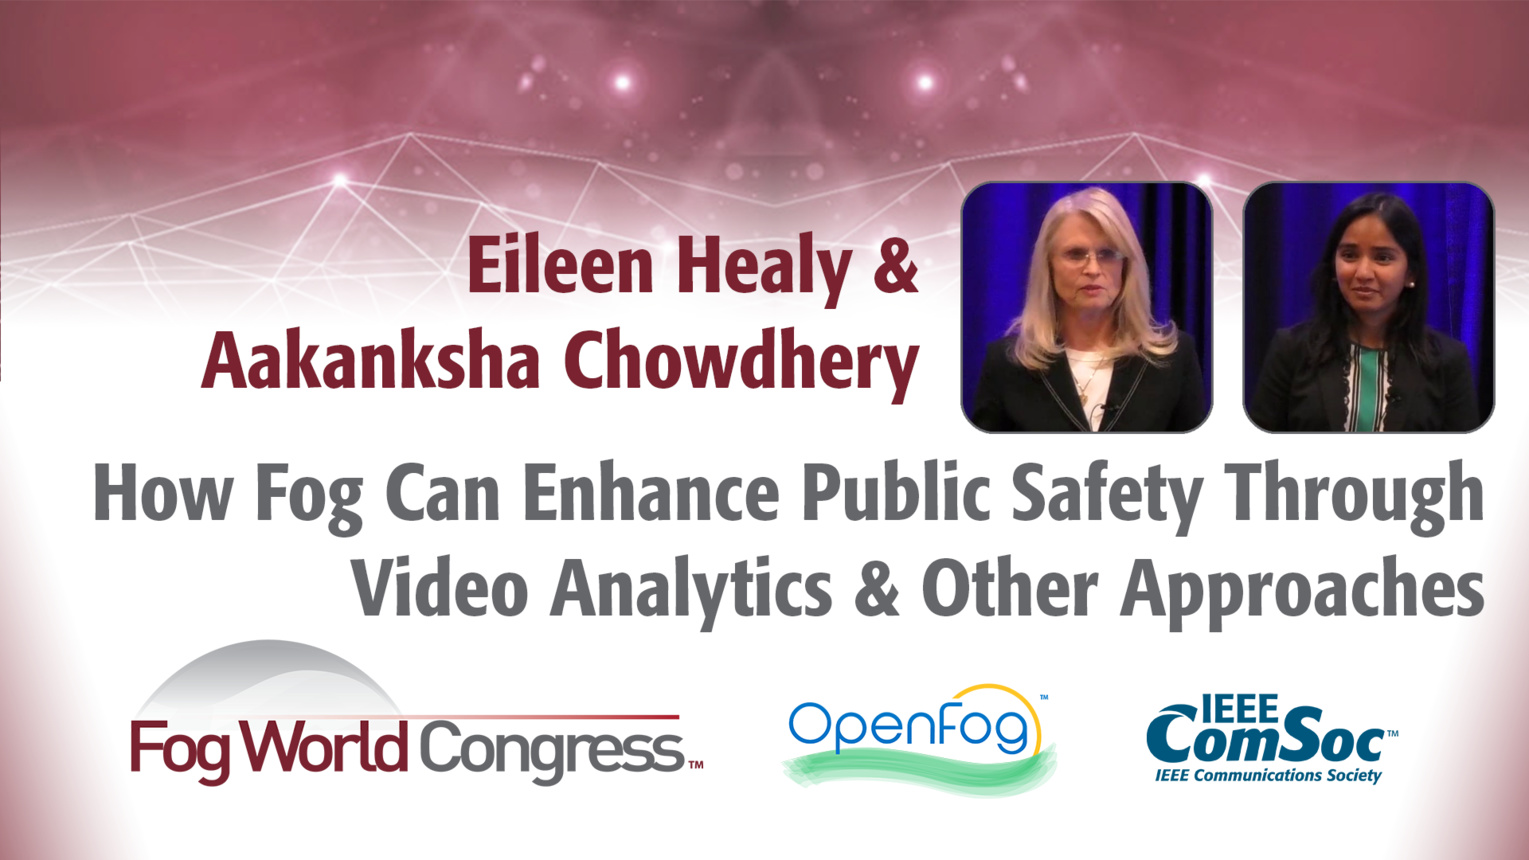 How Fog Computing Can Enhance Public Safety - Eileen Healy and Aakanksha Chowdhery, Fog World Congress 2017